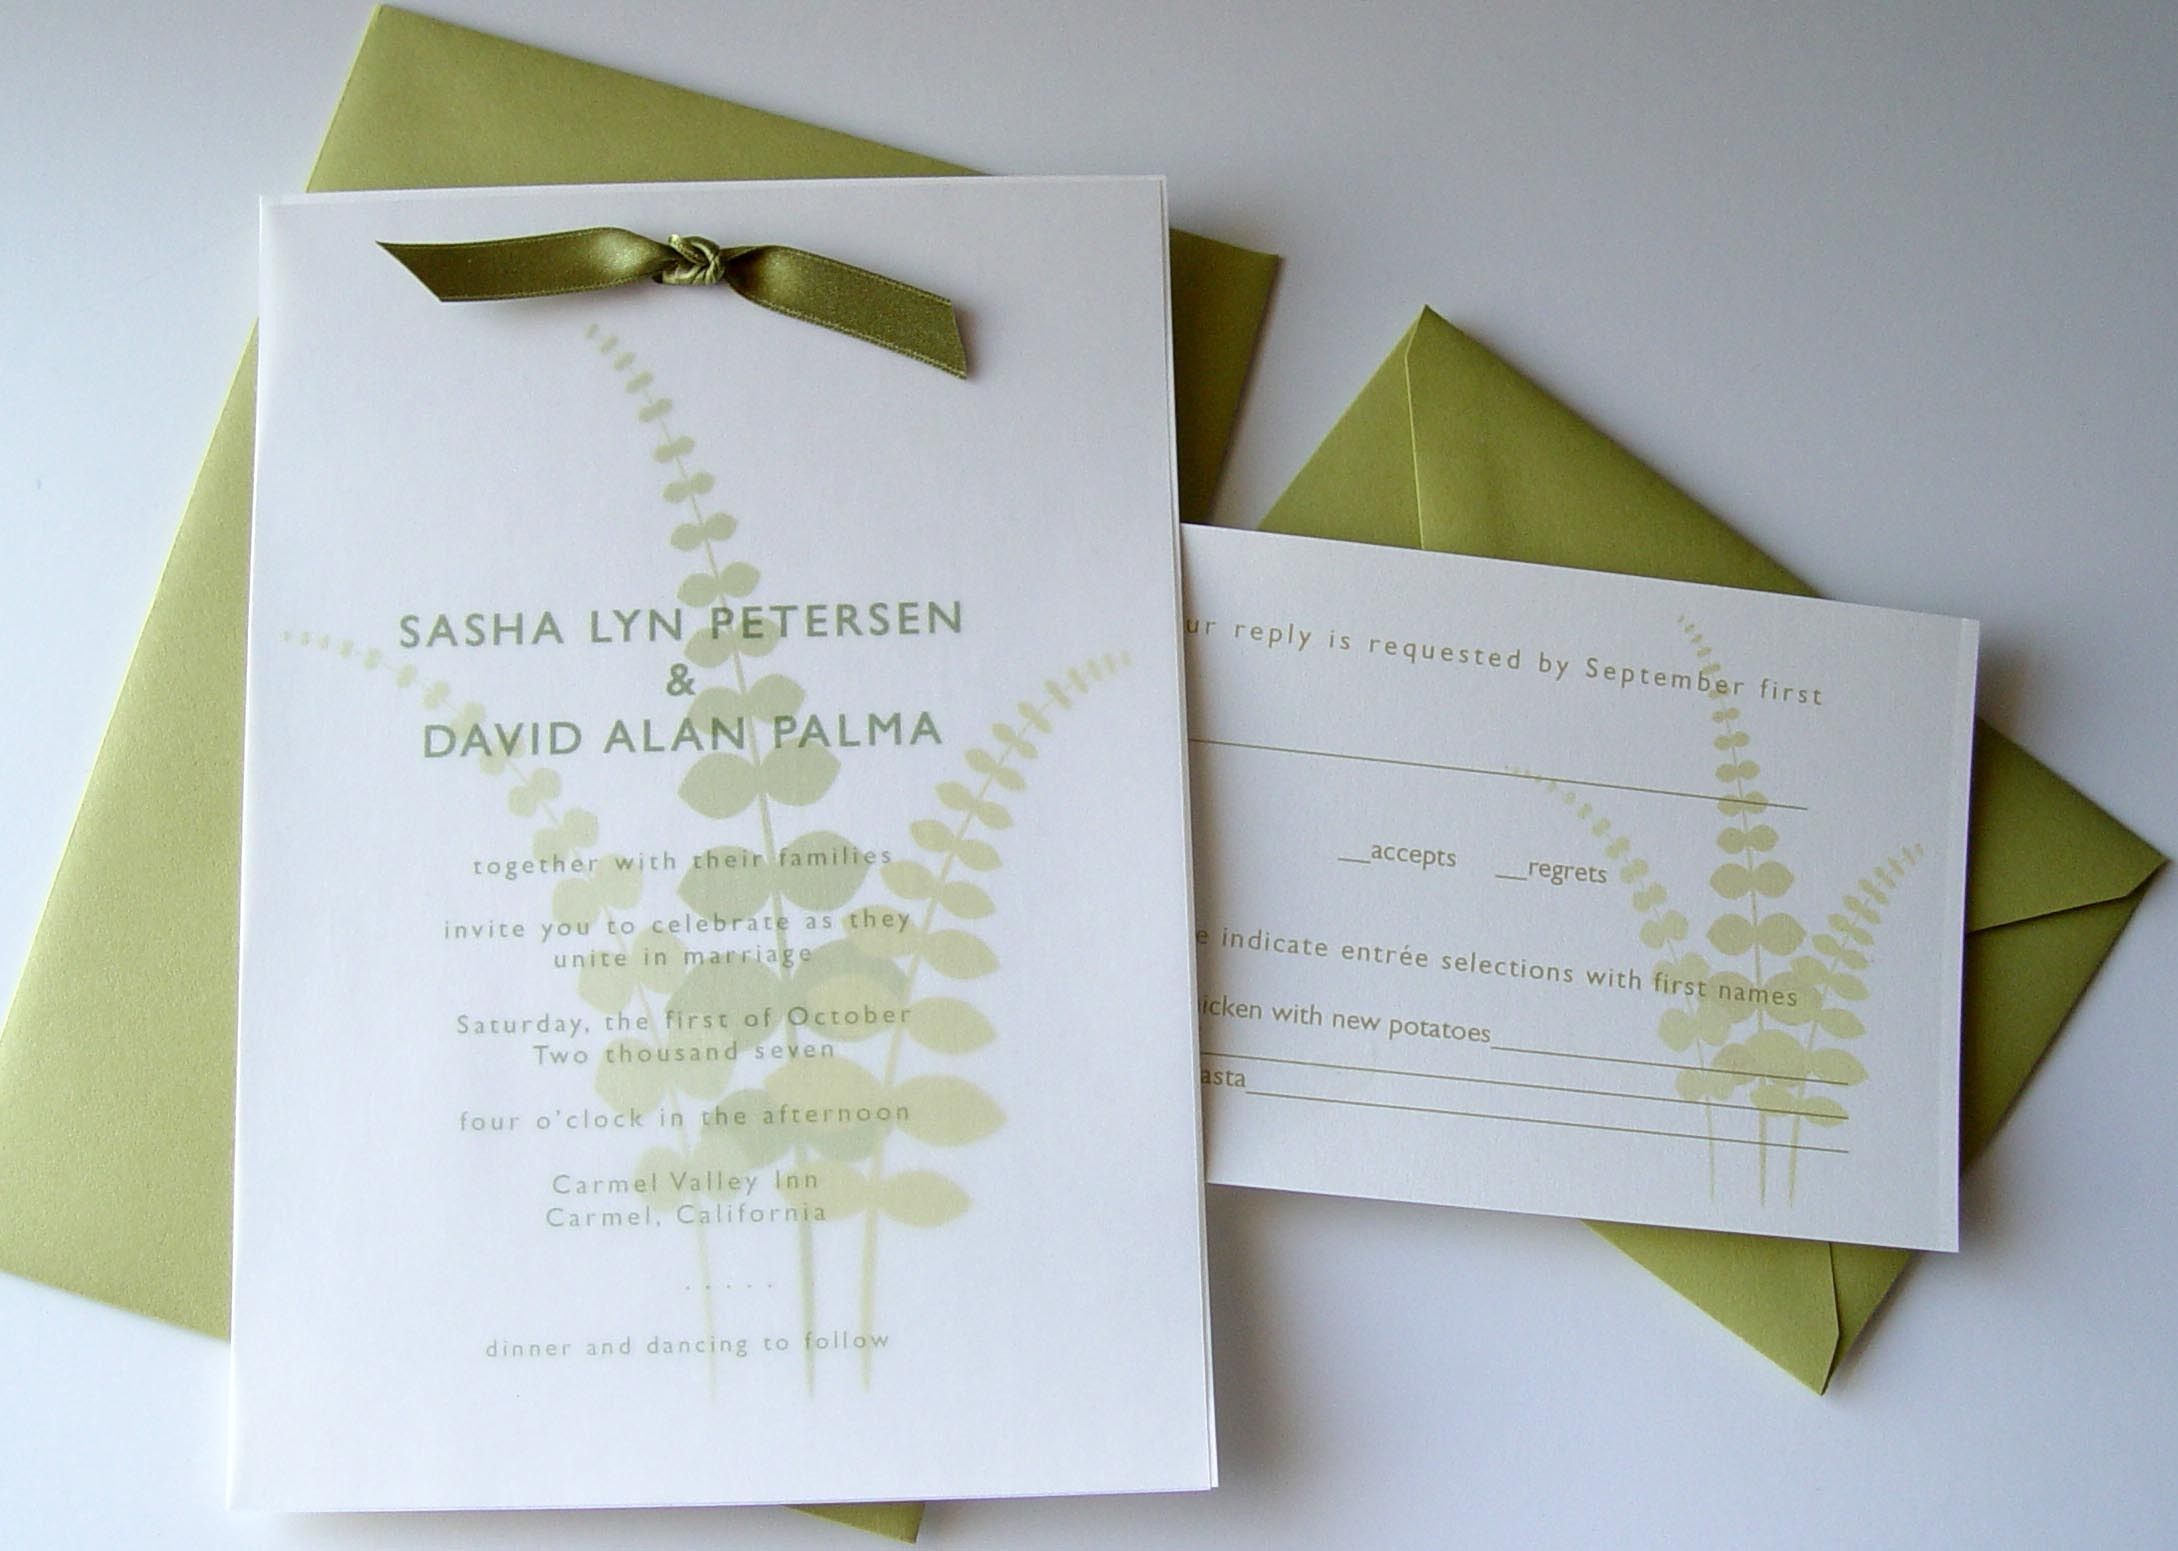 Stationery, green, Garden Wedding Invitations, Vineyard Wedding Invitations, Invitations, Crescent moon paper, Fern